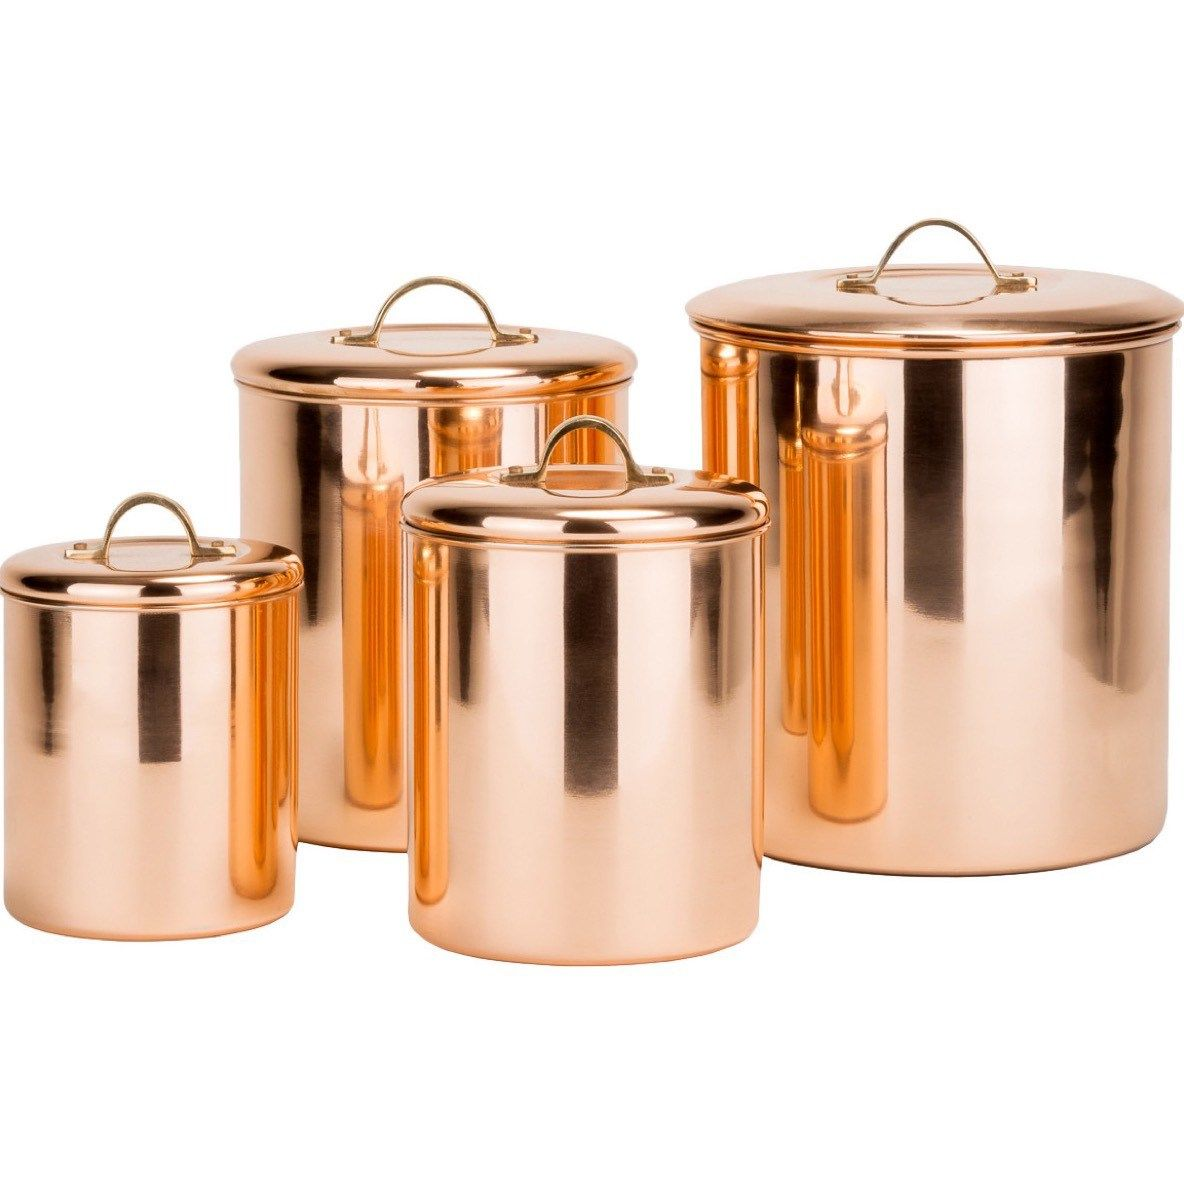 Kitchen Canister Set Storage Coffee Tea Sugar Stainless Steel Copper  Tramontina Gourmet Pc Stainless Steel Kitchen